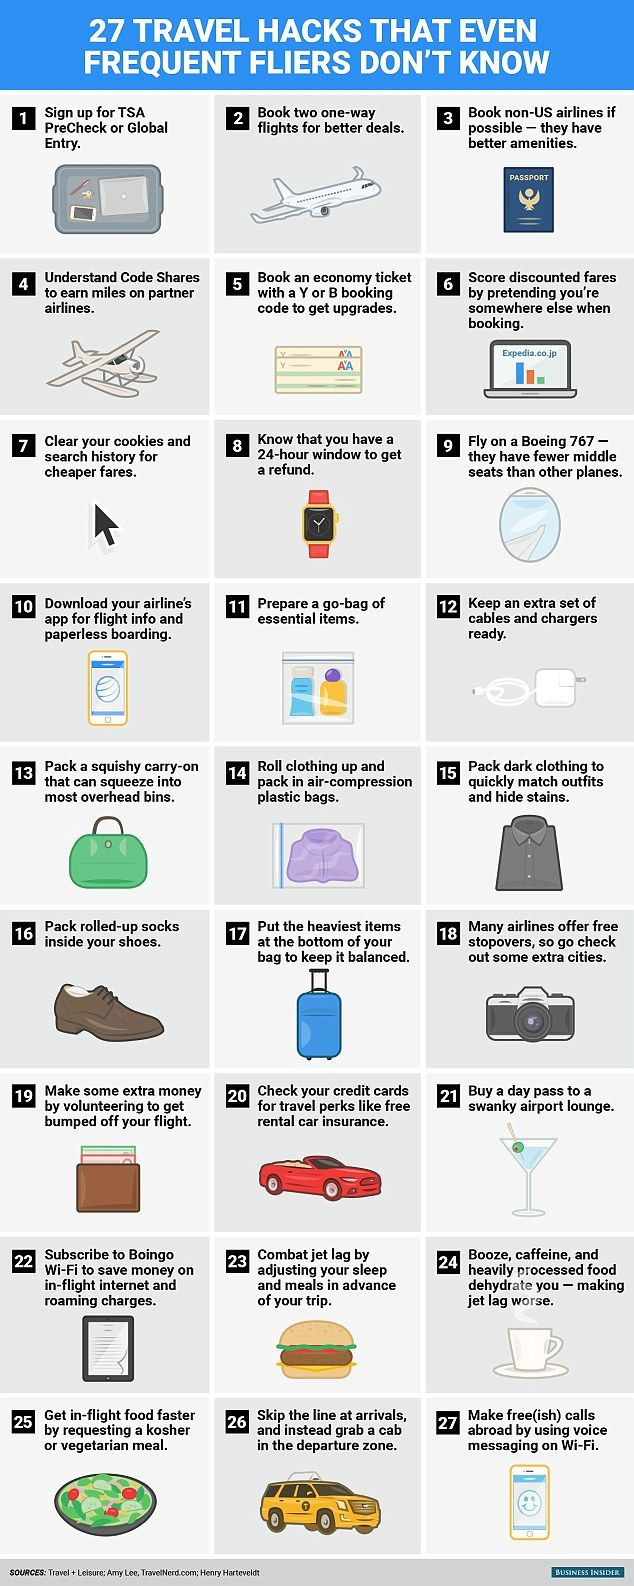 27 little-known travel tips that will surprise even frequent fliers | Daily Mail Online